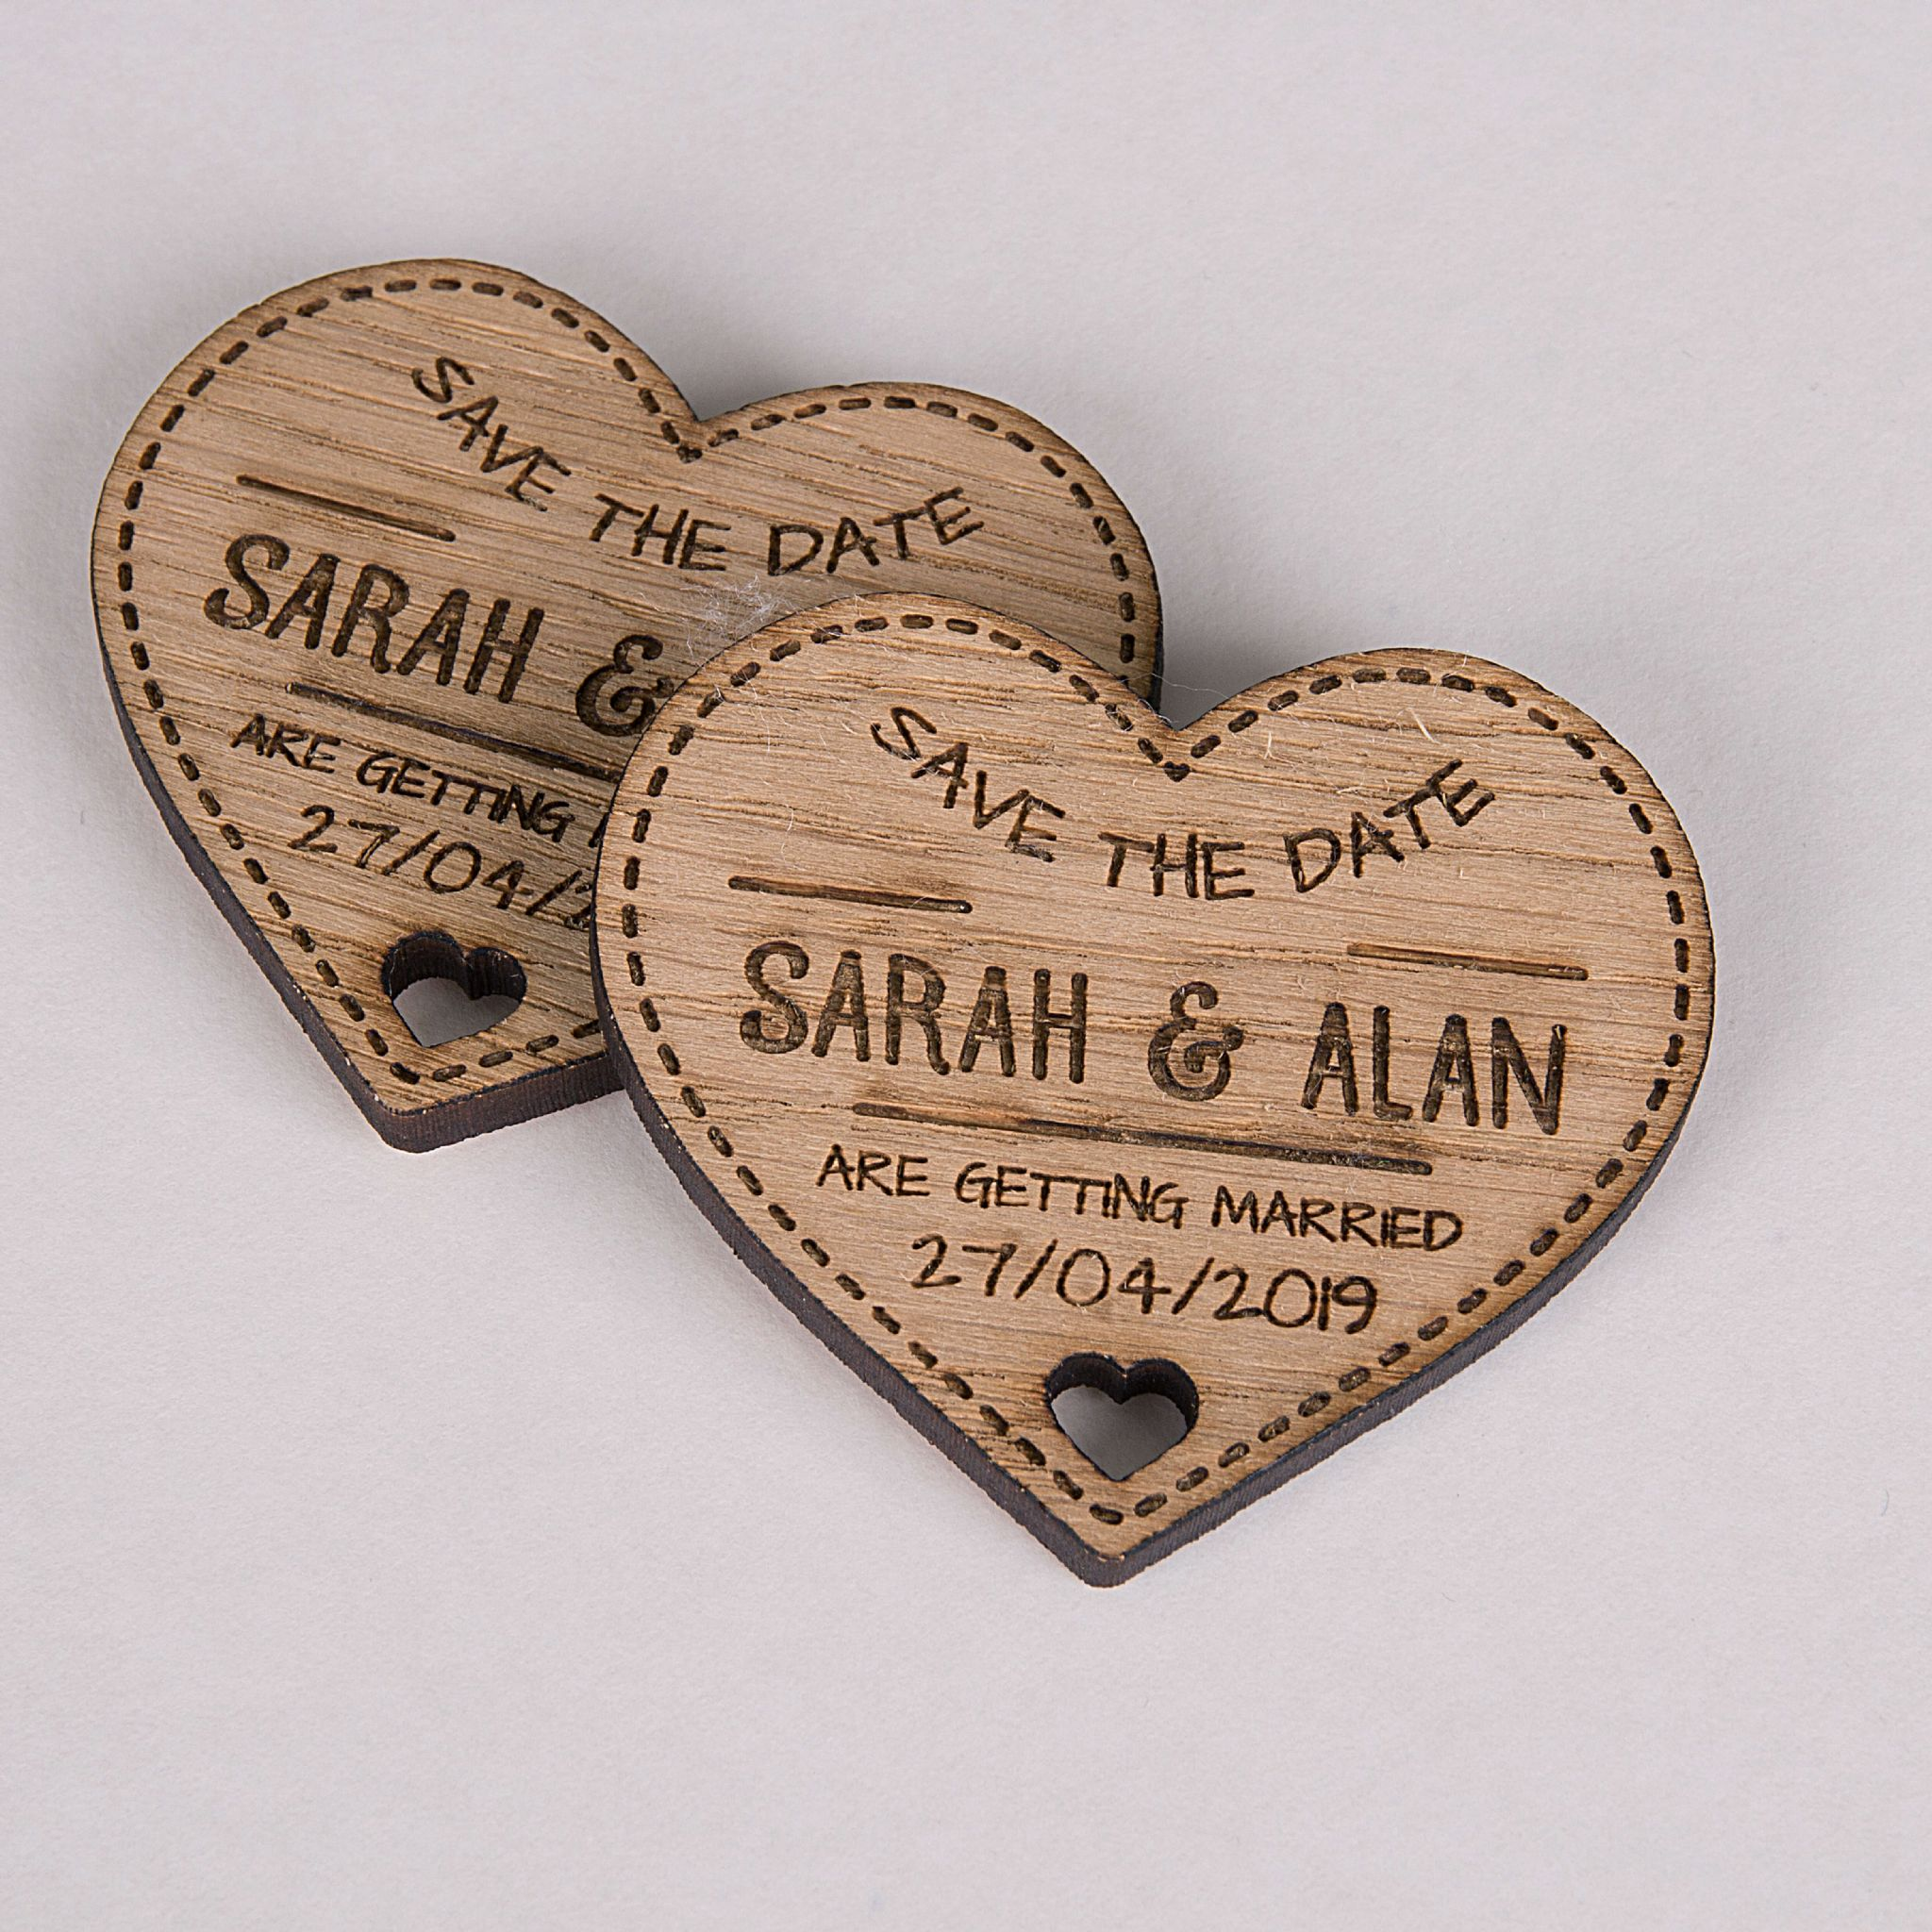 Little Gifts With Love - Personalised Engraved Rustic Wooden Oak Heart Save The Date Fridge Magnets Invites